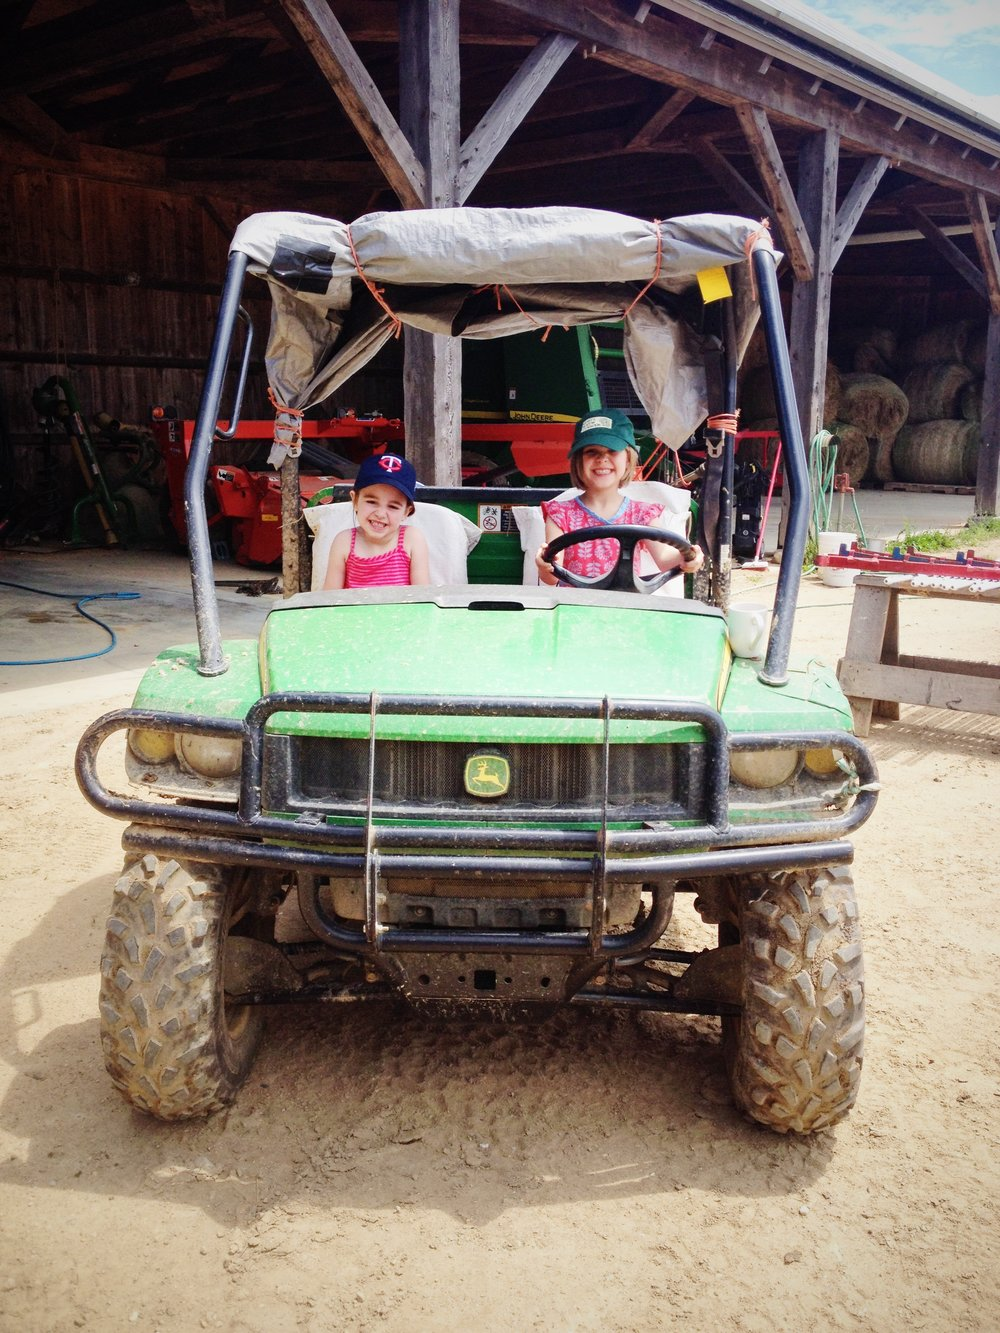 Mondays @ 10am - Kids Farm ExperienceBring the whole family and experience a little something different each week. Climb a tractor, chase a chicken, sketch a drawing of a baby lamb. Who knows what's in store on kids day!10$ per person1 hour.No advance registration needed. Meet at farmstand.